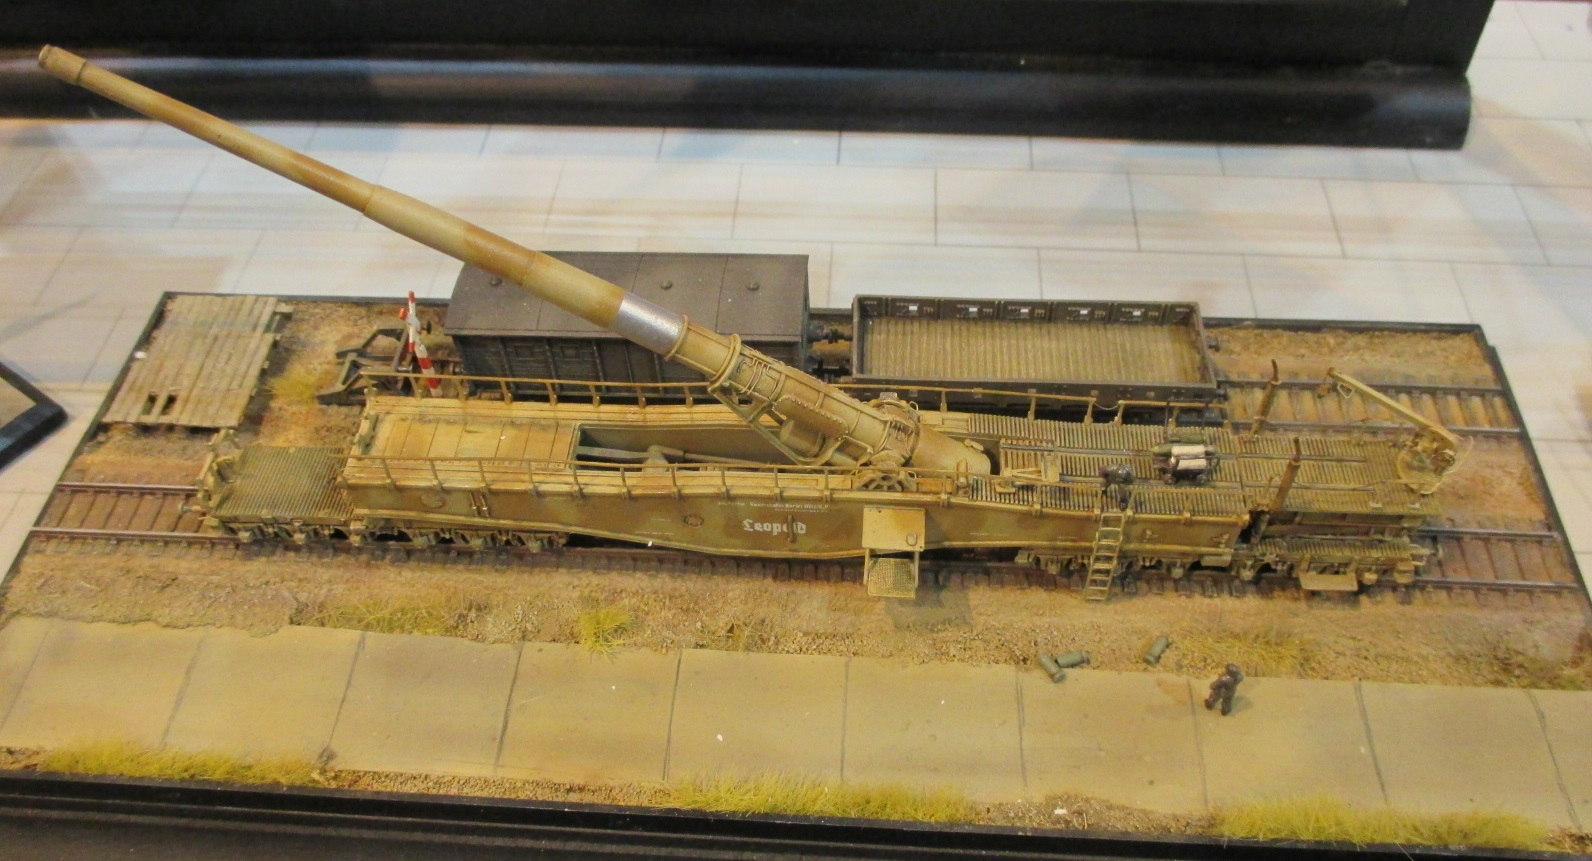 1 144 airbattle scale modelworld 2015 part 6 sig 144 for Ouvrir une nouvelle fenetre html